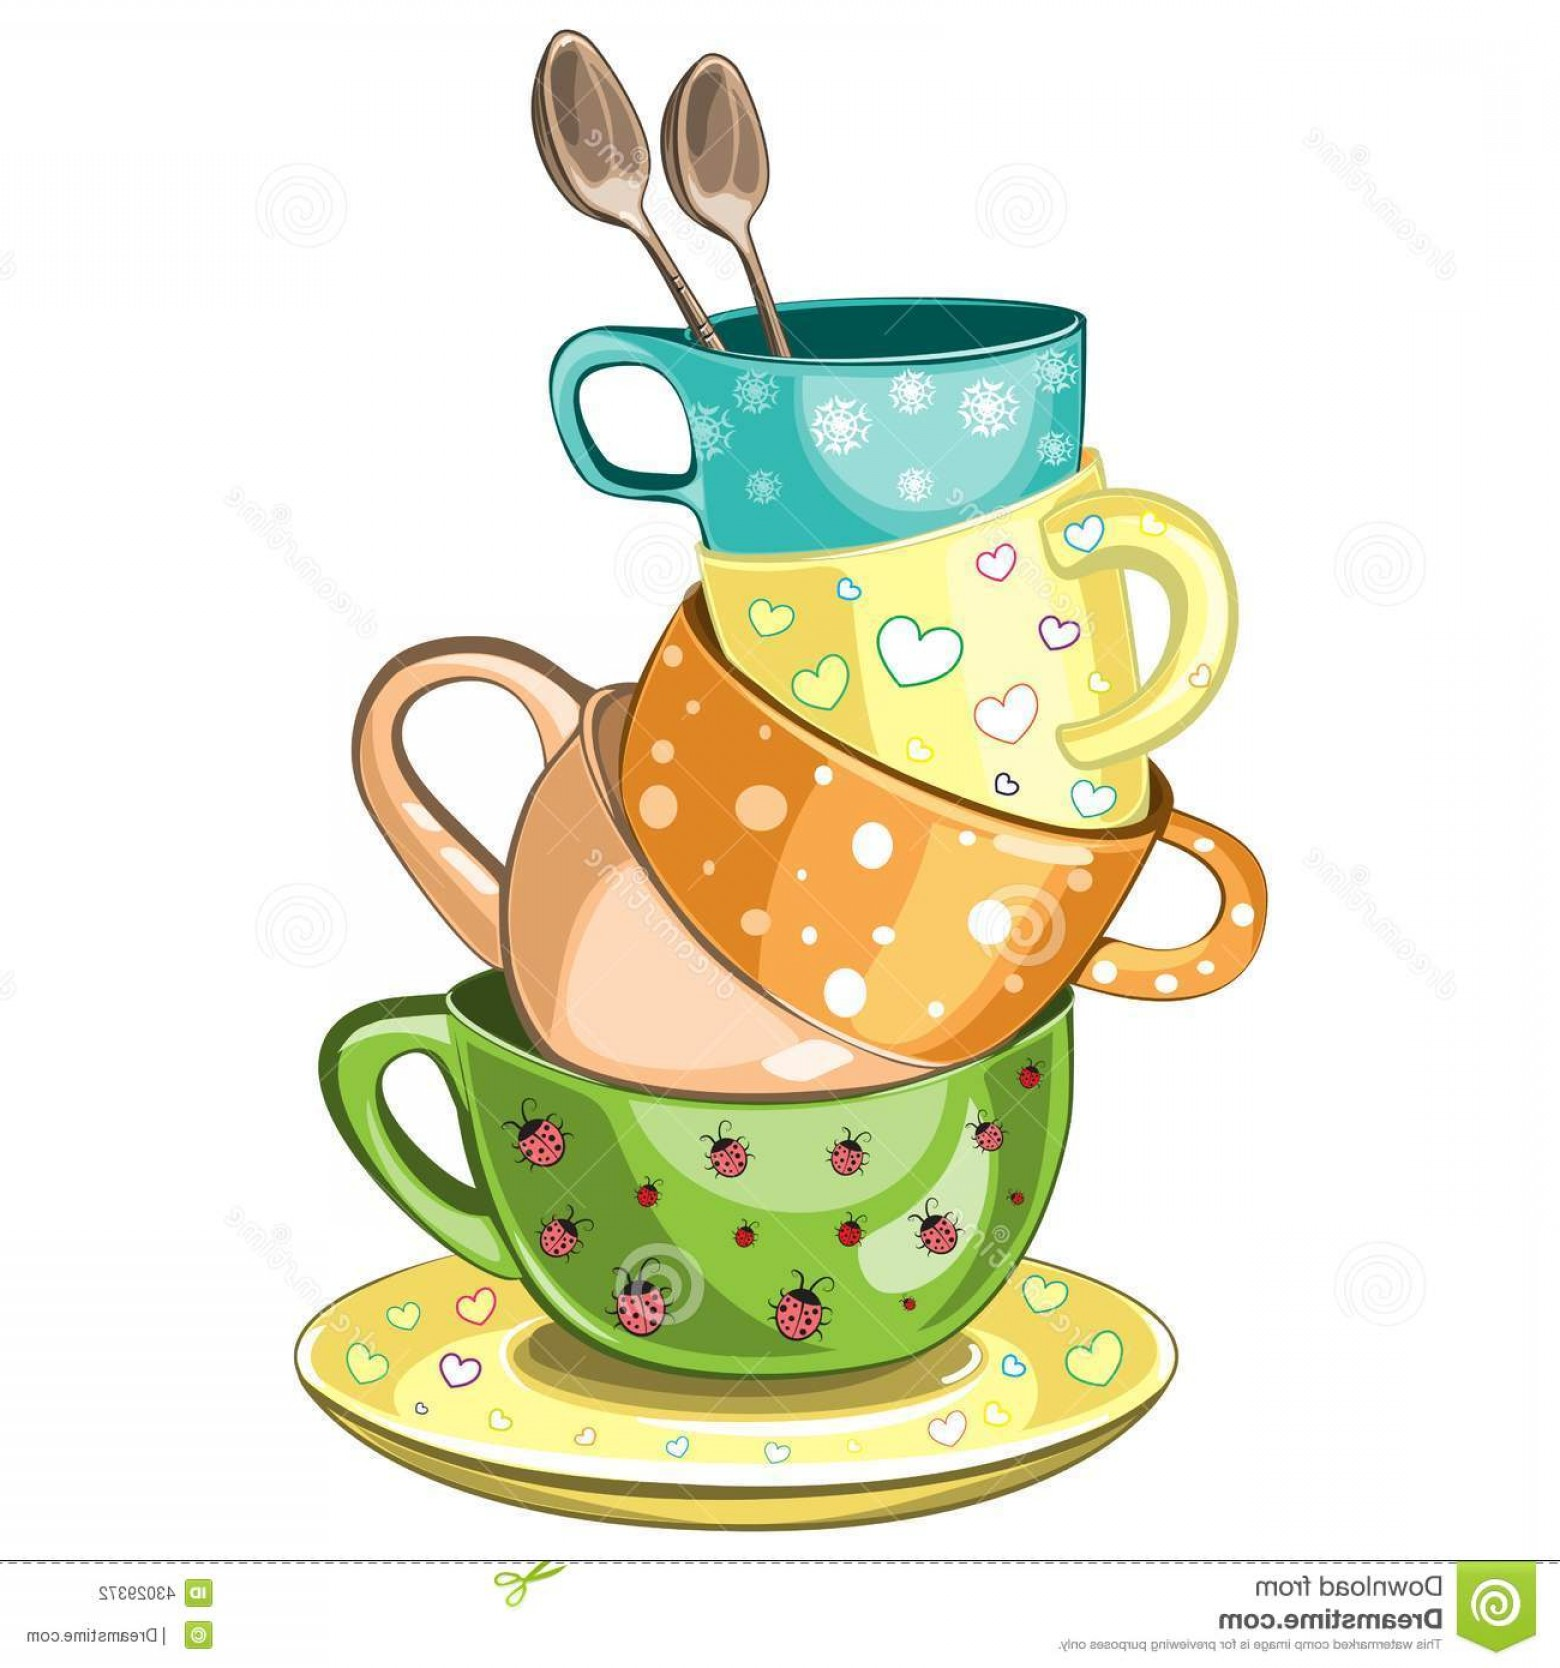 Vintage Tea Cup Vector: Stock Illustration Stacked Tea Cups Fancy Multi Colored Vector Illustration Image